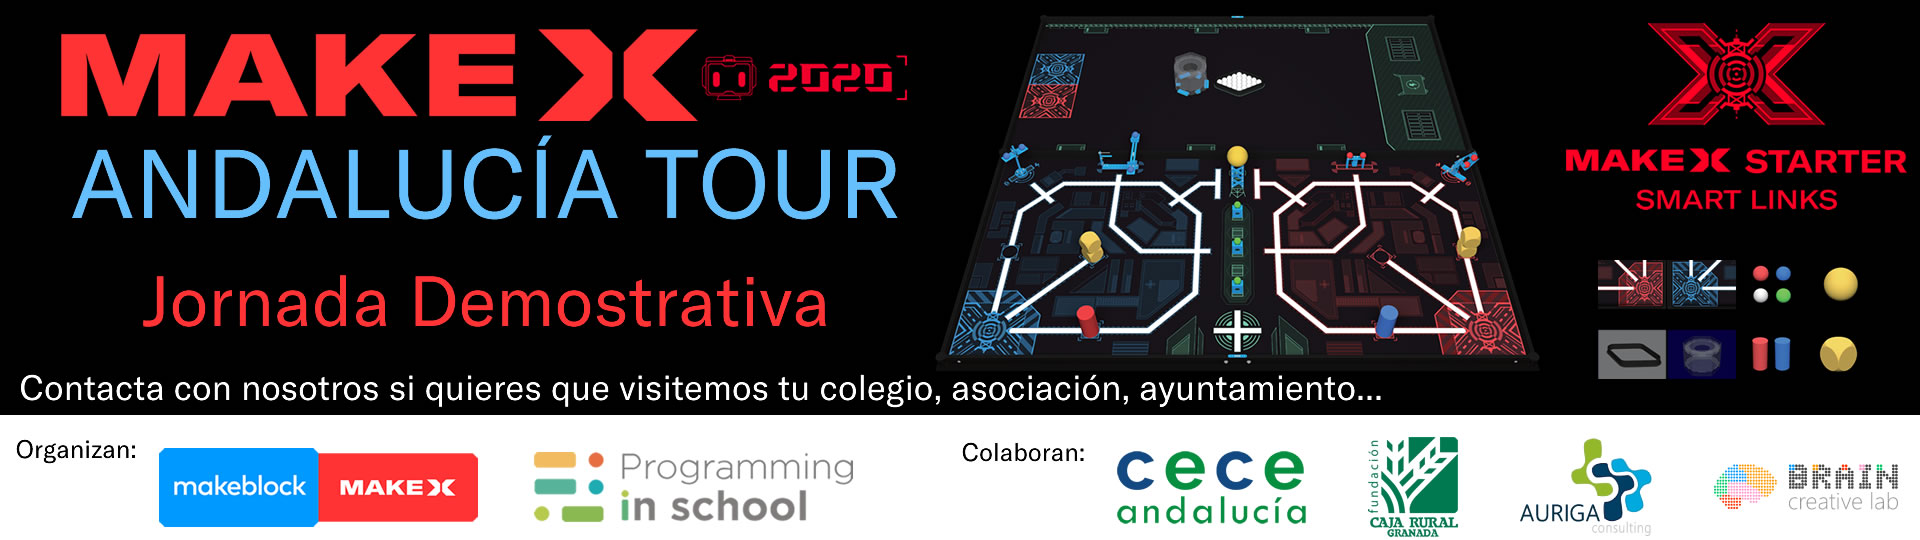 MakeX-Andalucia-Tour-2020